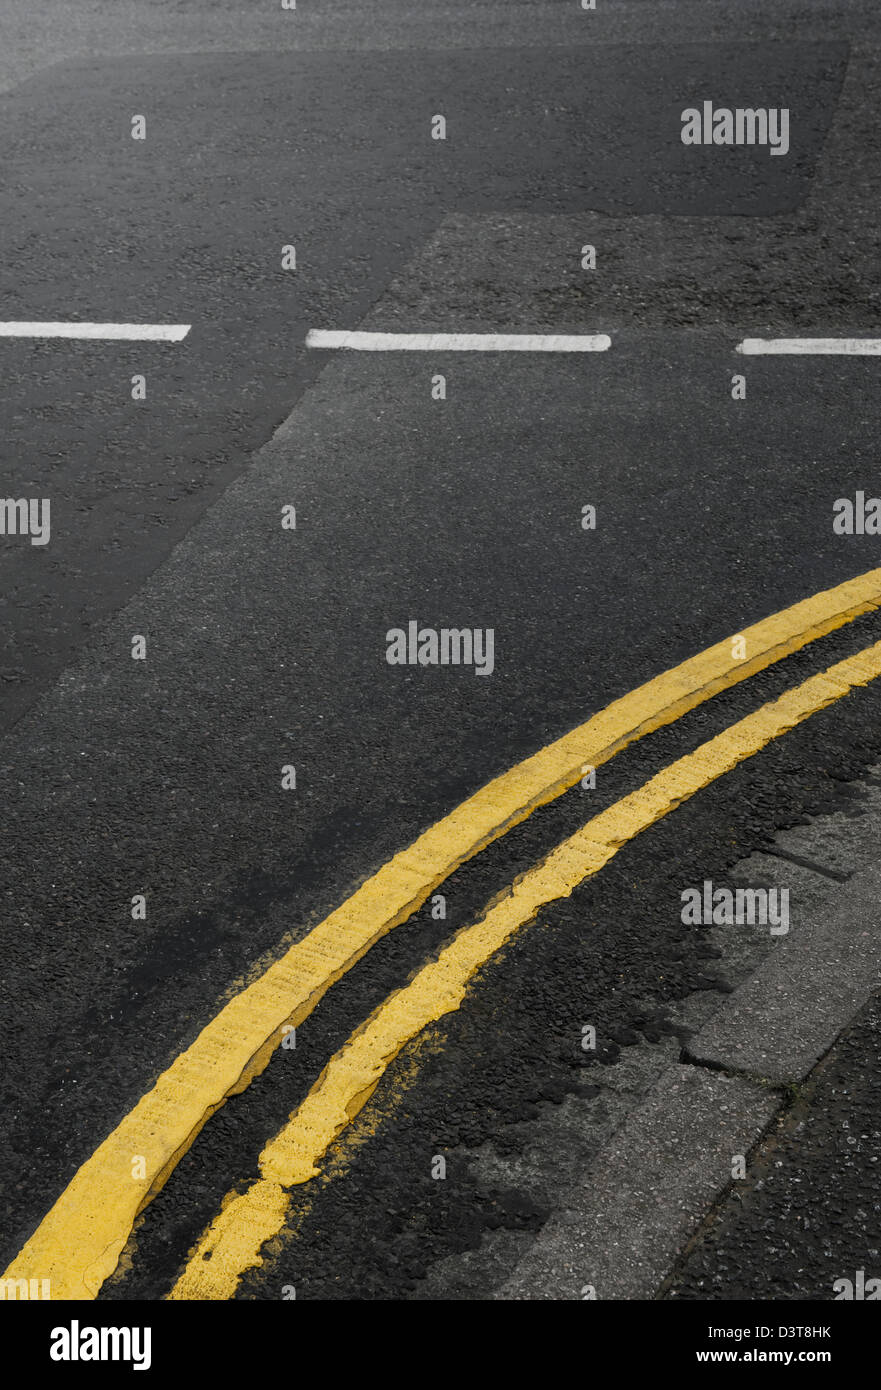 Curved Double Yellow Lines on the Road at a Junction, UK - Stock Image